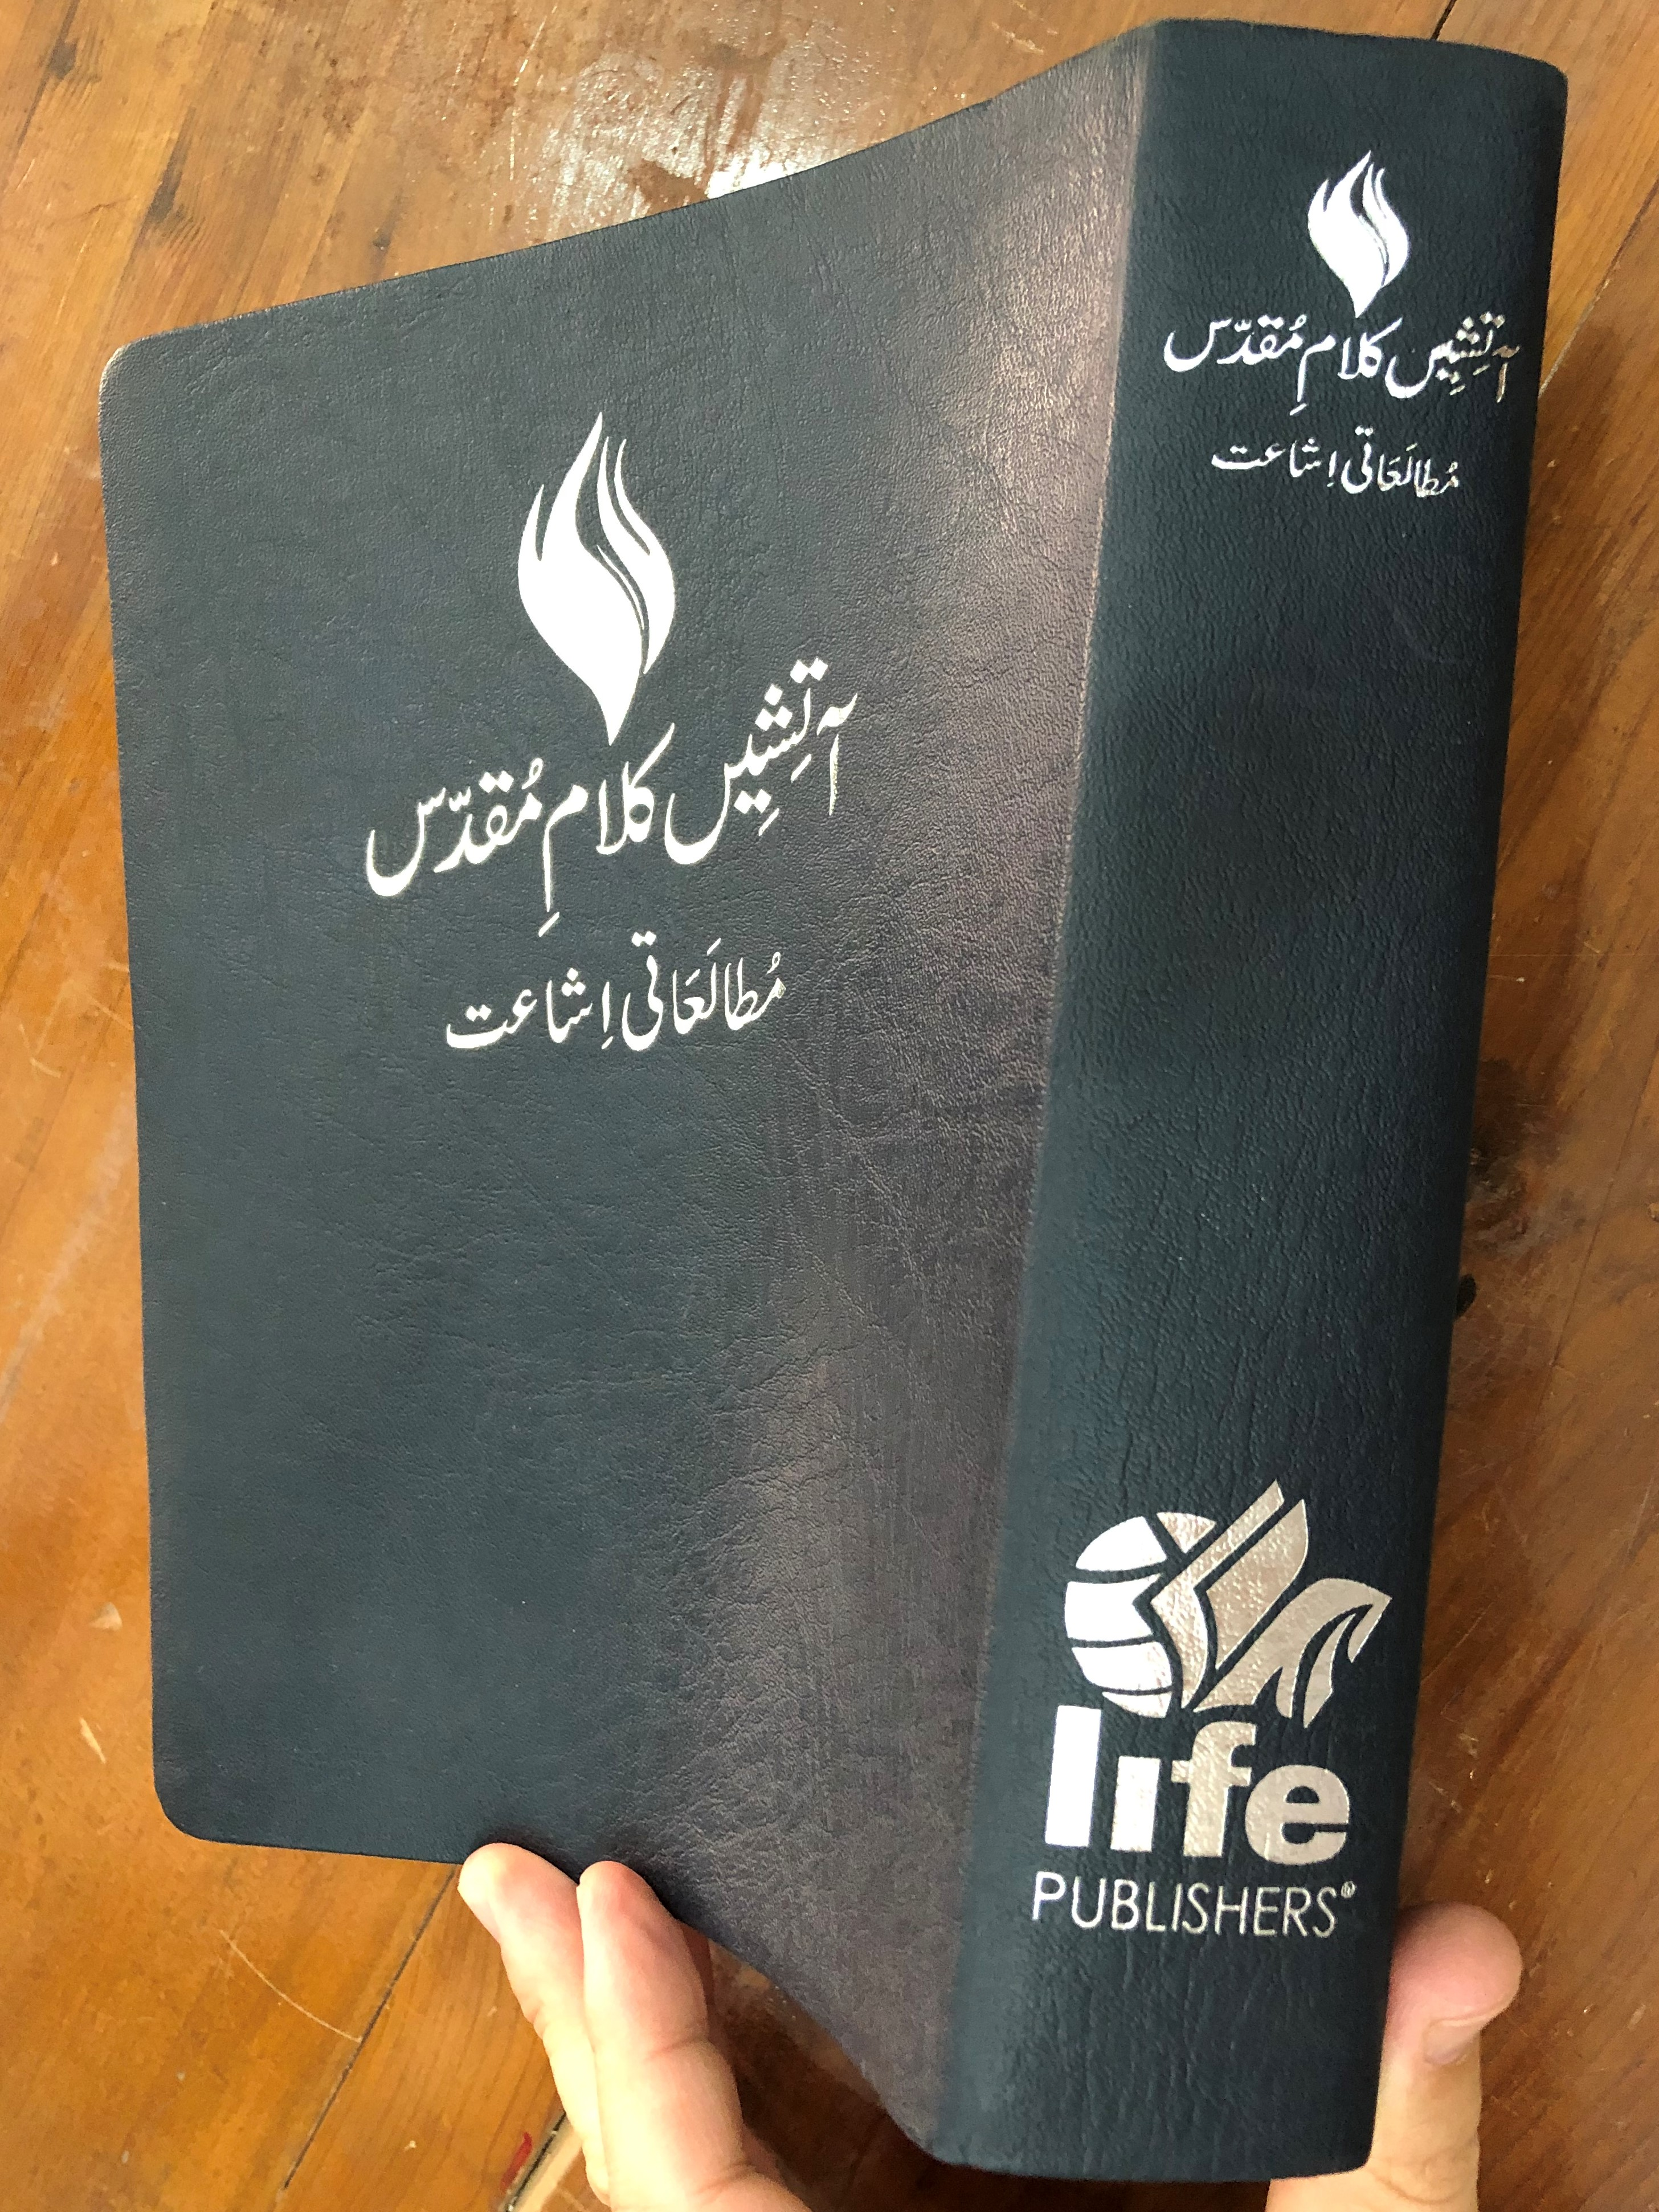 urdu-spirit-filled-study-bible-urdu-fire-bible-pentecostal-bible-life-publishers-2016-2-.jpg